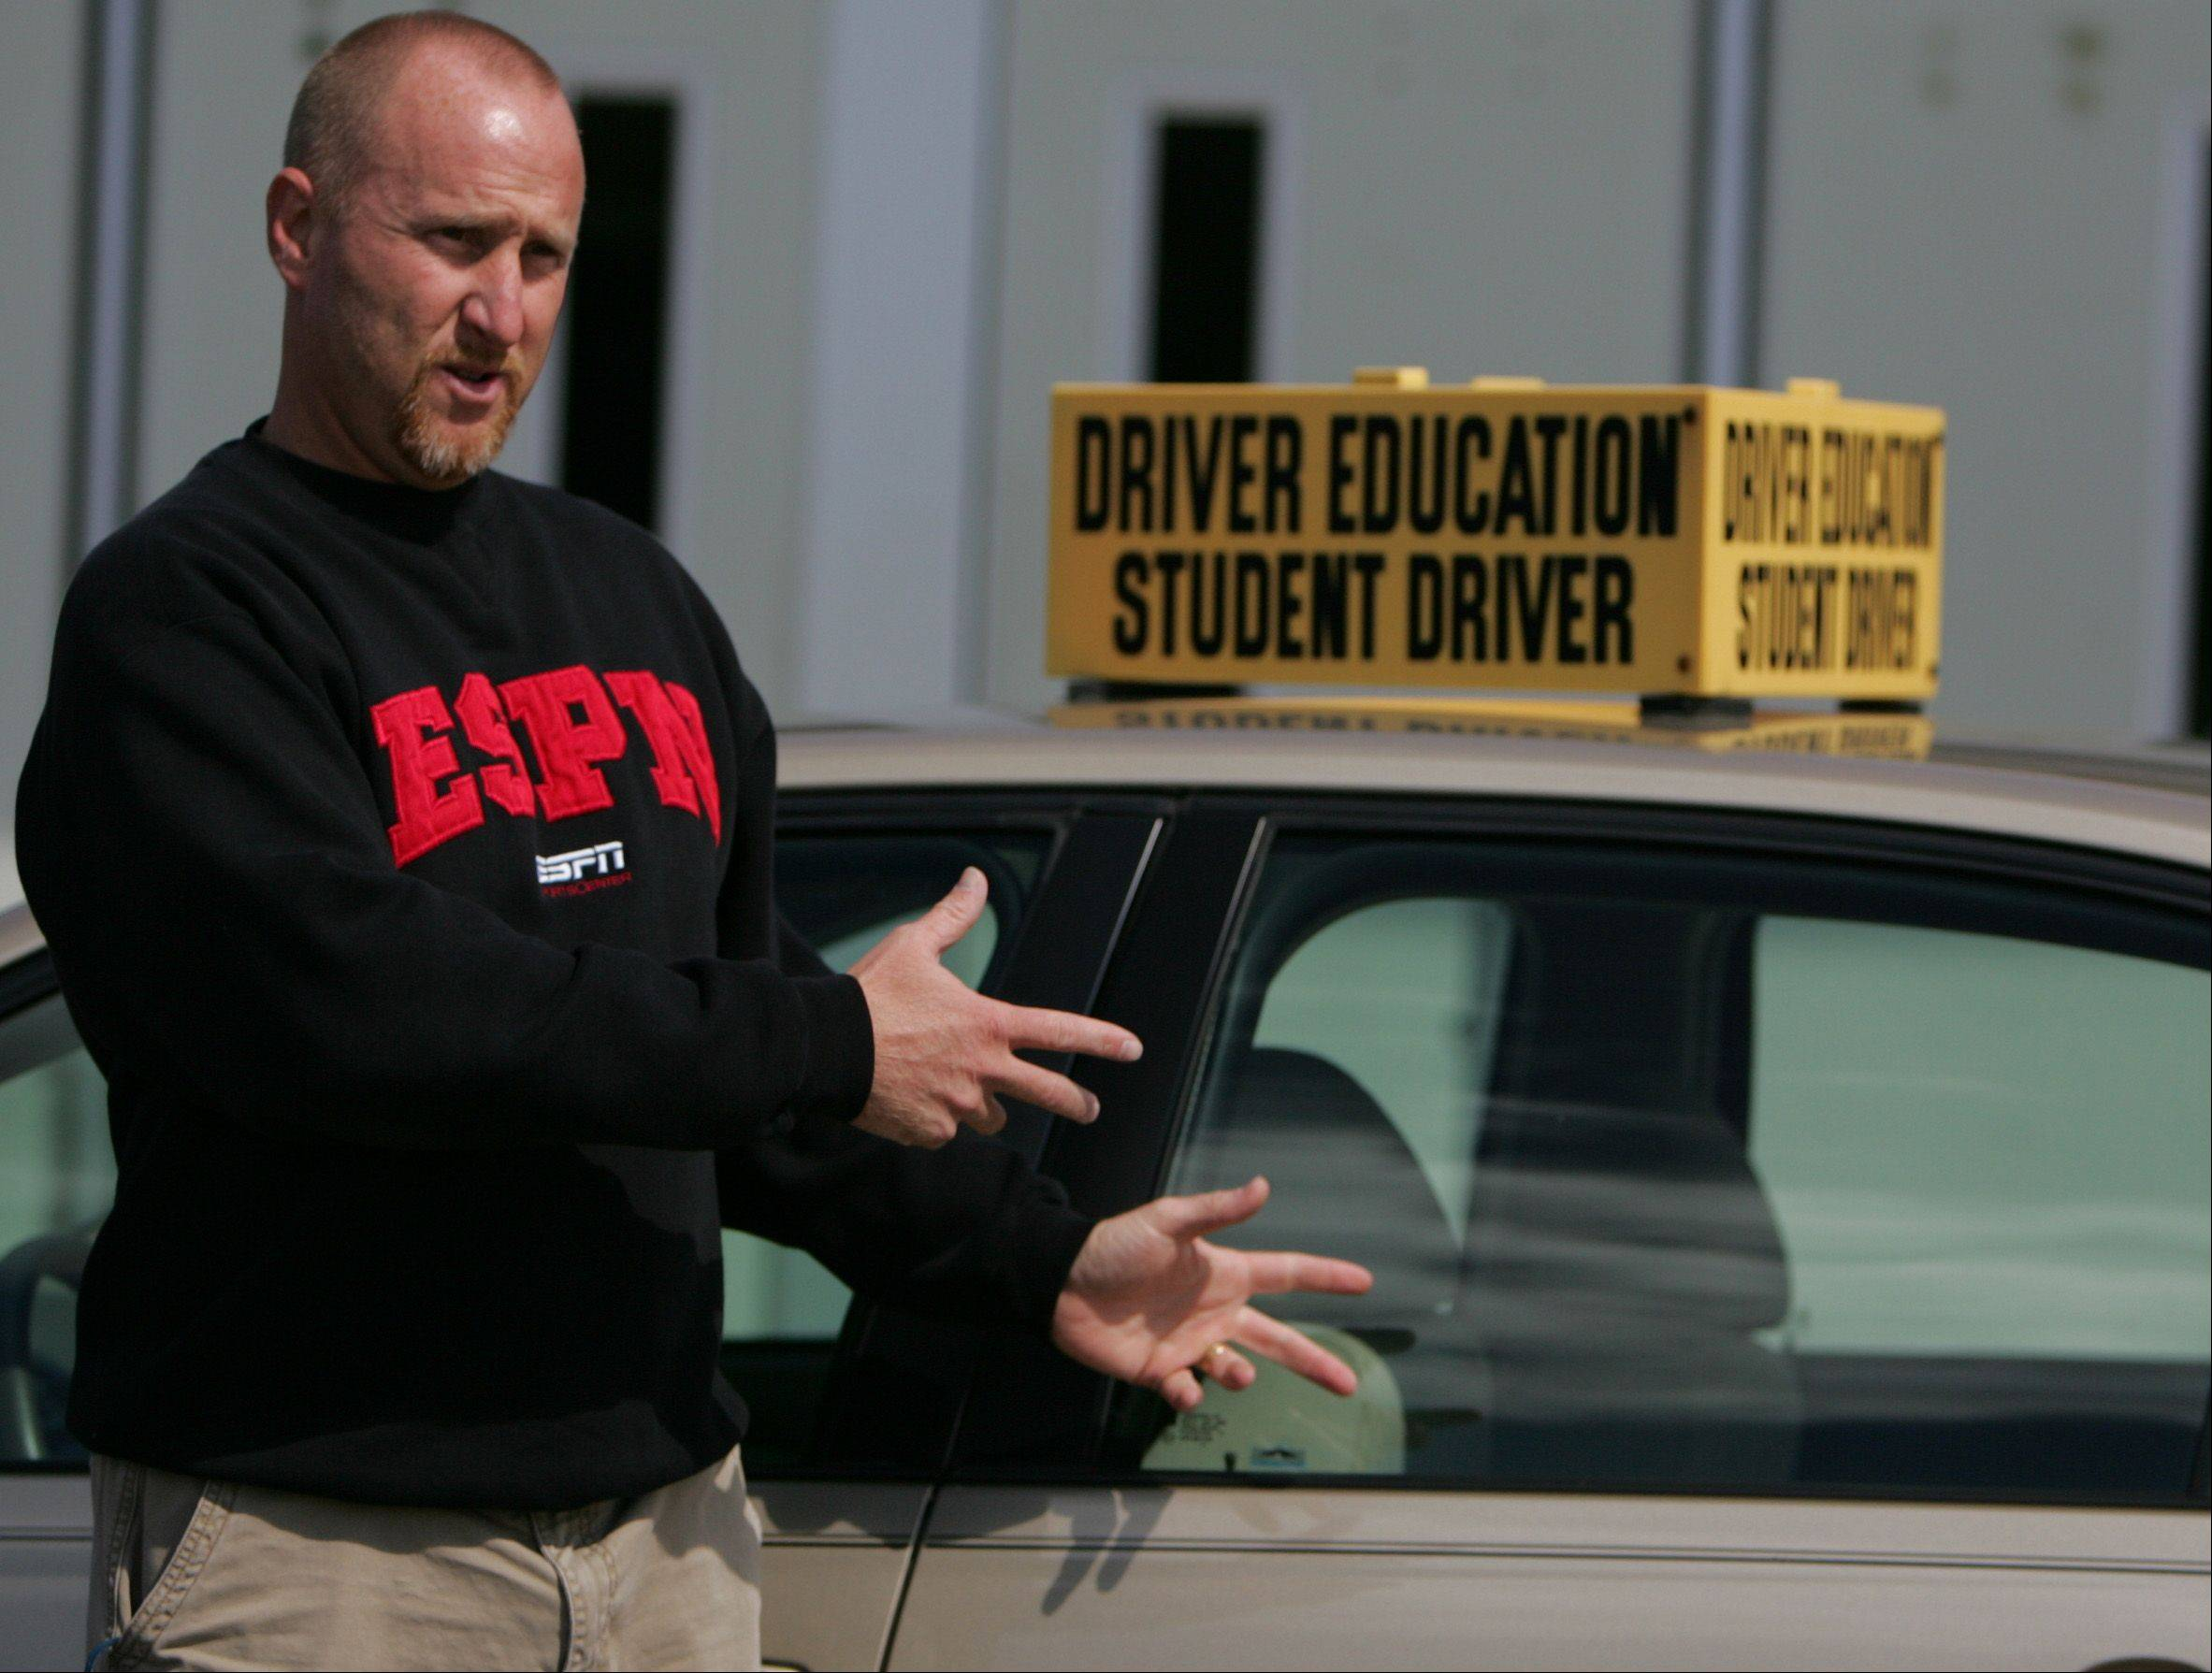 Tim Lazzarotto is the Leader of the Drivers Education program at Prospect High School.